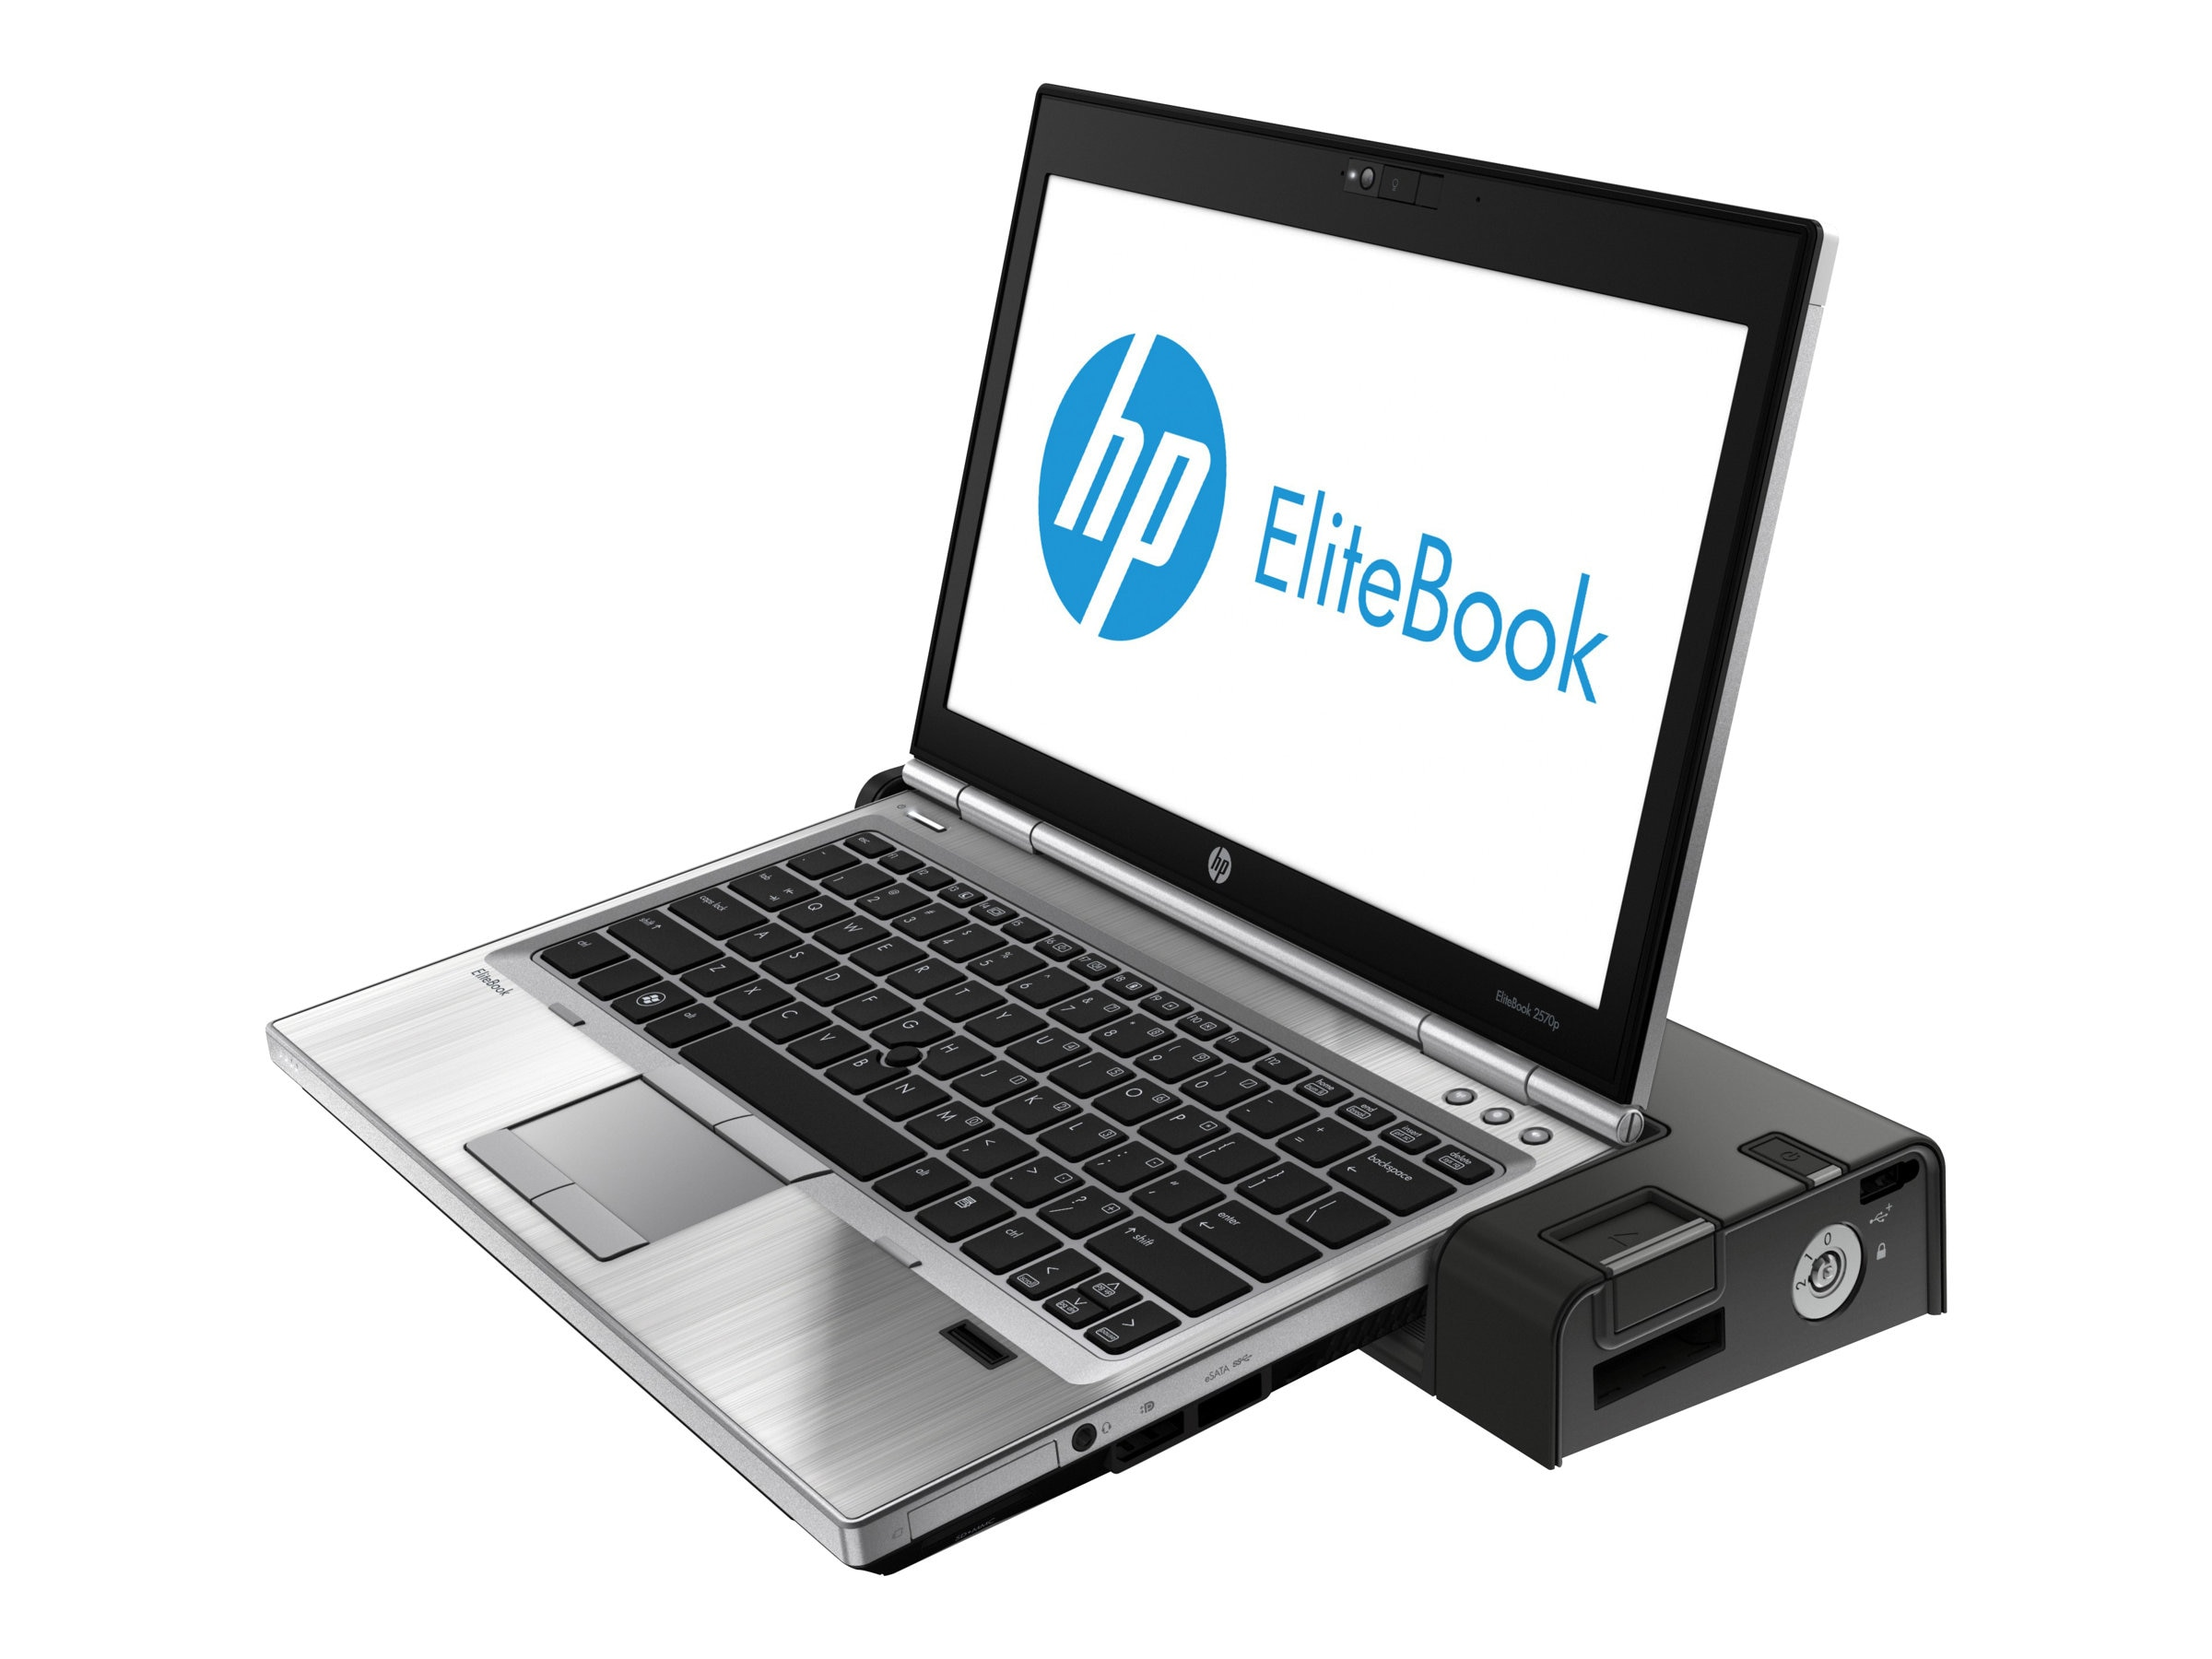 HP EliteBook 2570p 2.9GHz Core i5 12.5in display, D2W43AW#ABA, 15755836, Notebooks